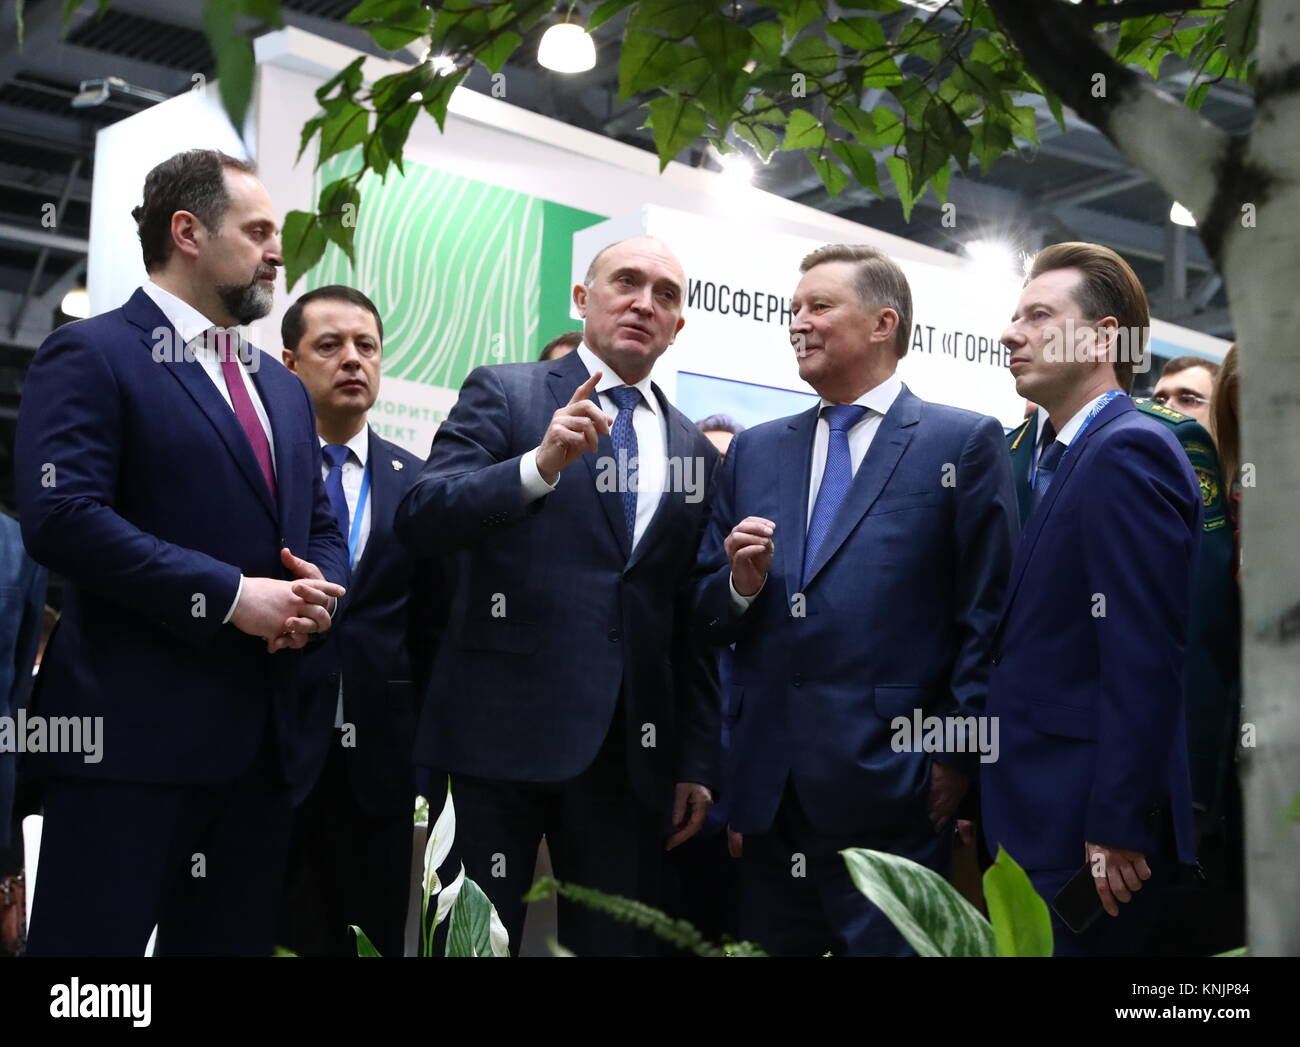 MOSCOW, RUSSIA - DECEMBER 12, 2017: Russia's Natural Resources and Environment Minister Sergei Donskoi, Artyom - Stock Image